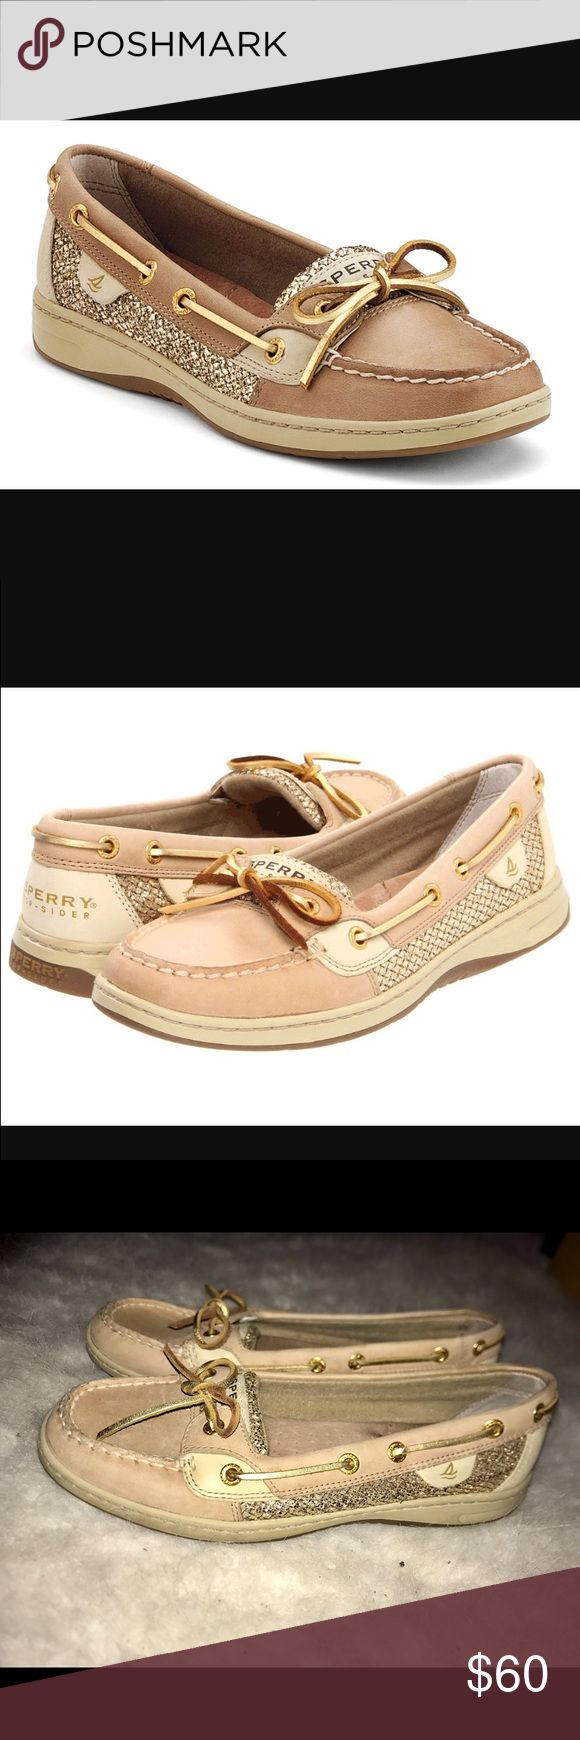 Gold Sperrys Gold Sparkly Glitter Sperrys! In beautiful condition. Lots of padding in the sole and extremely comfortable. Women's size 8M. Will ship out day of purchase! Sperry Top-Sider Shoes Flats & Loafers